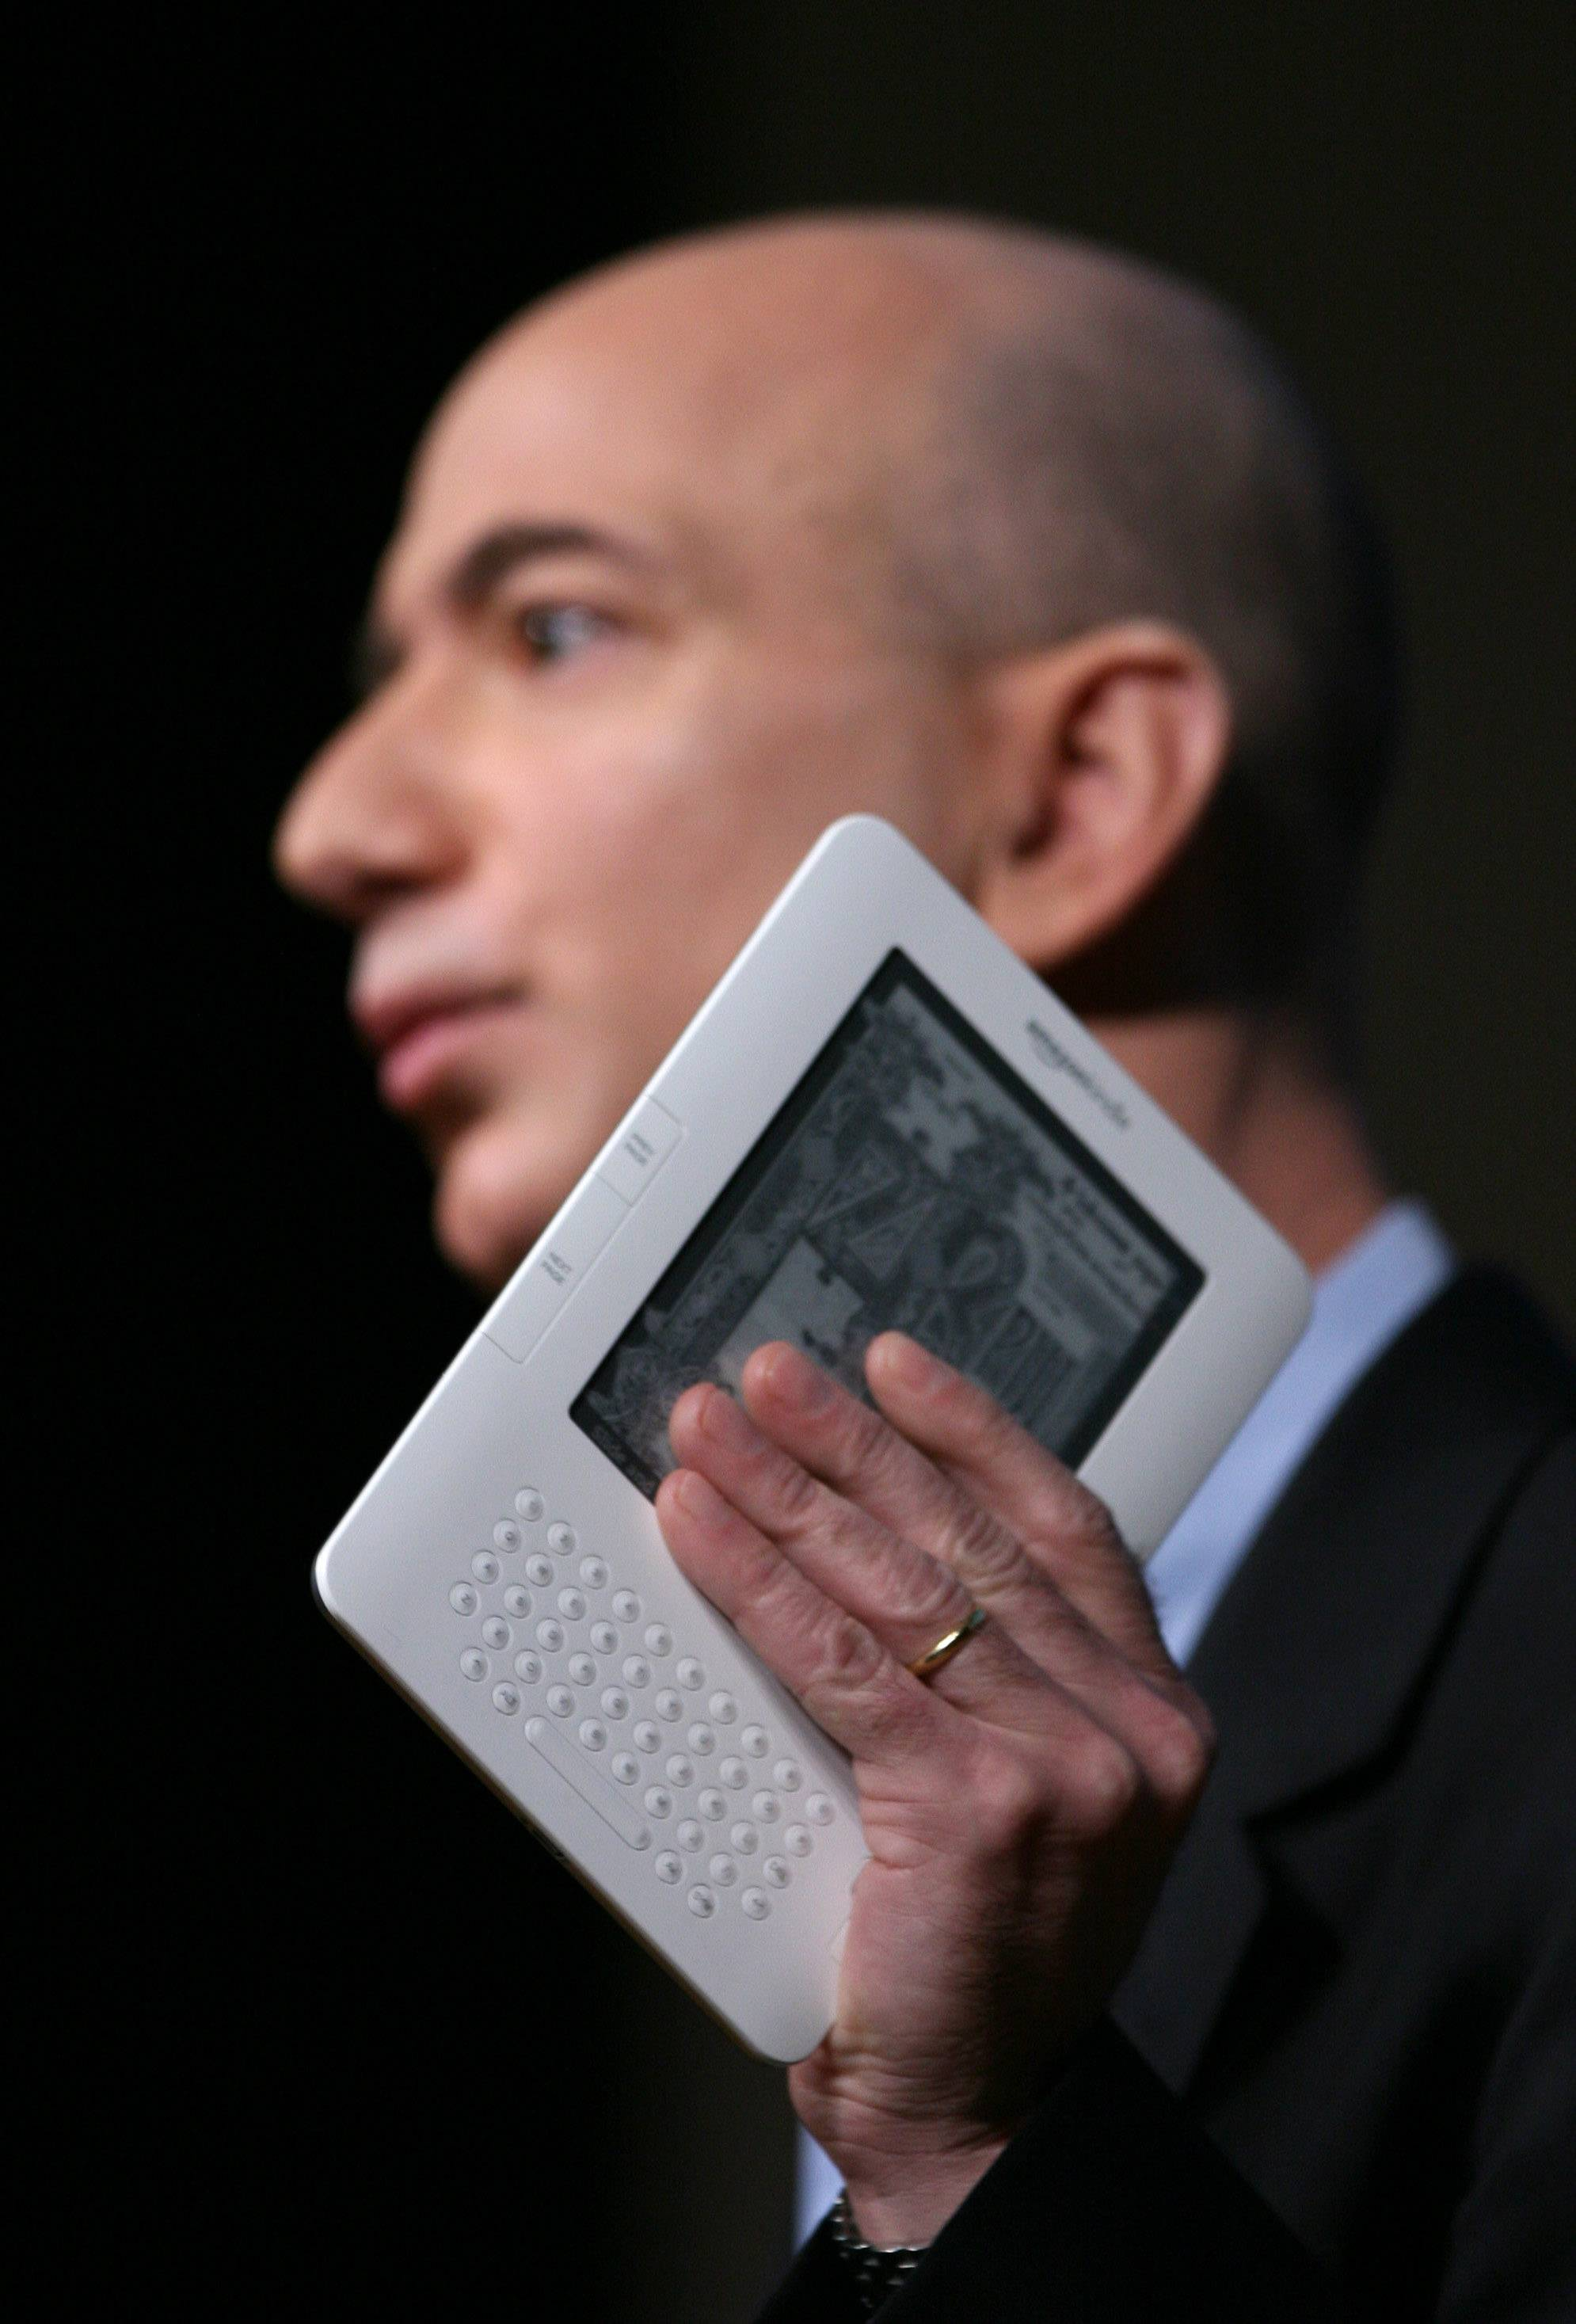 Jeff Bezos, chairman and CEO of Amazon.com.